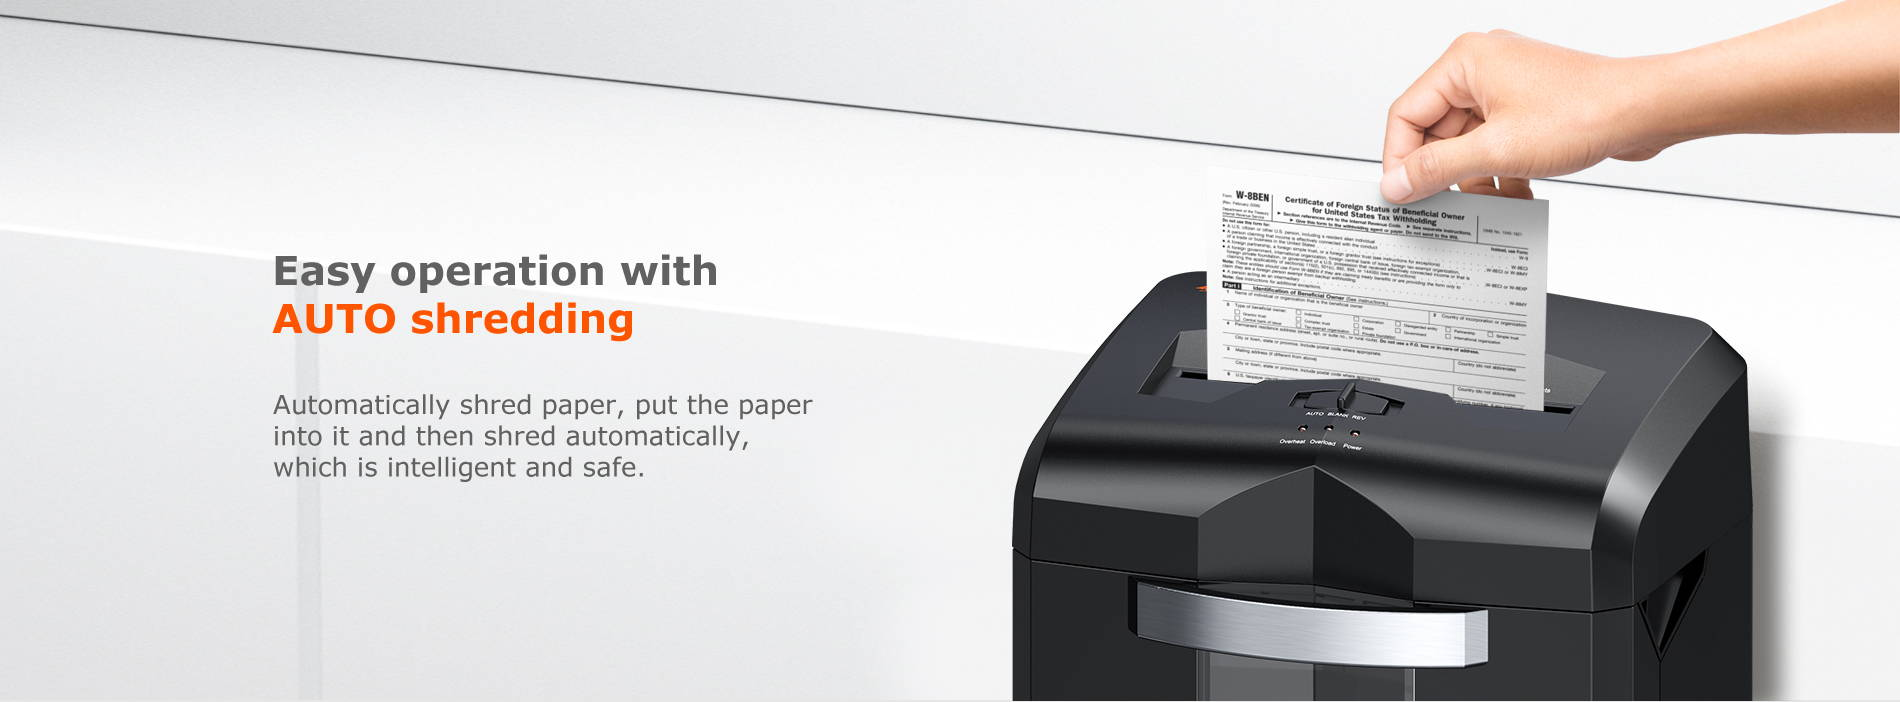 Easy operation with AUTO shredding  Automatically shred paper, put the paper into it and then shred automatically, which is intelligent and safe.